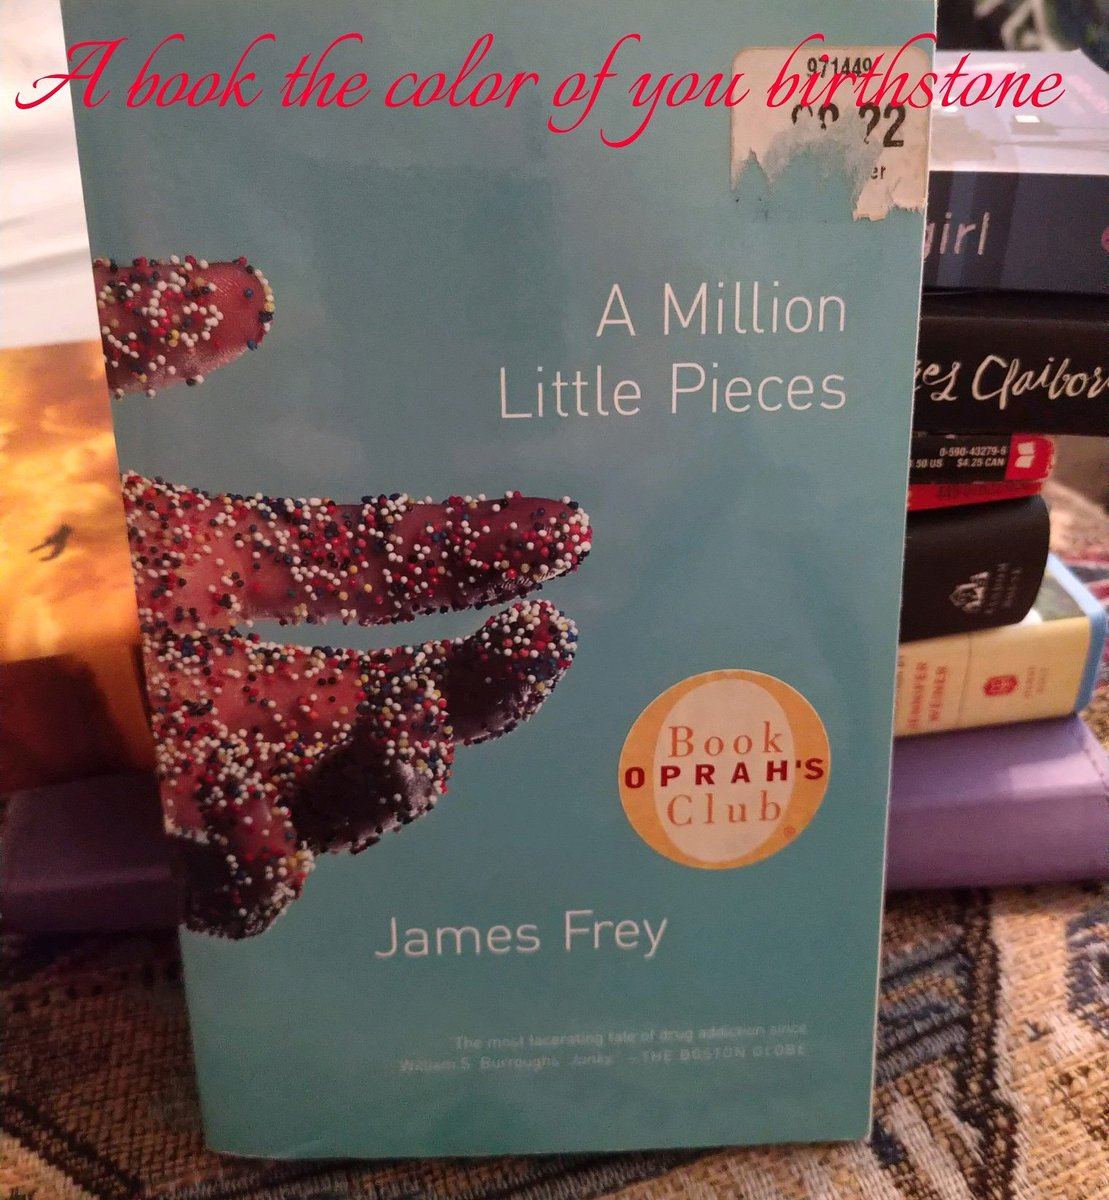 5 🌟 #amillionlittlepieces #jamesfrey #thereadingrush2020 https://t.co/9ACt3OaGPE